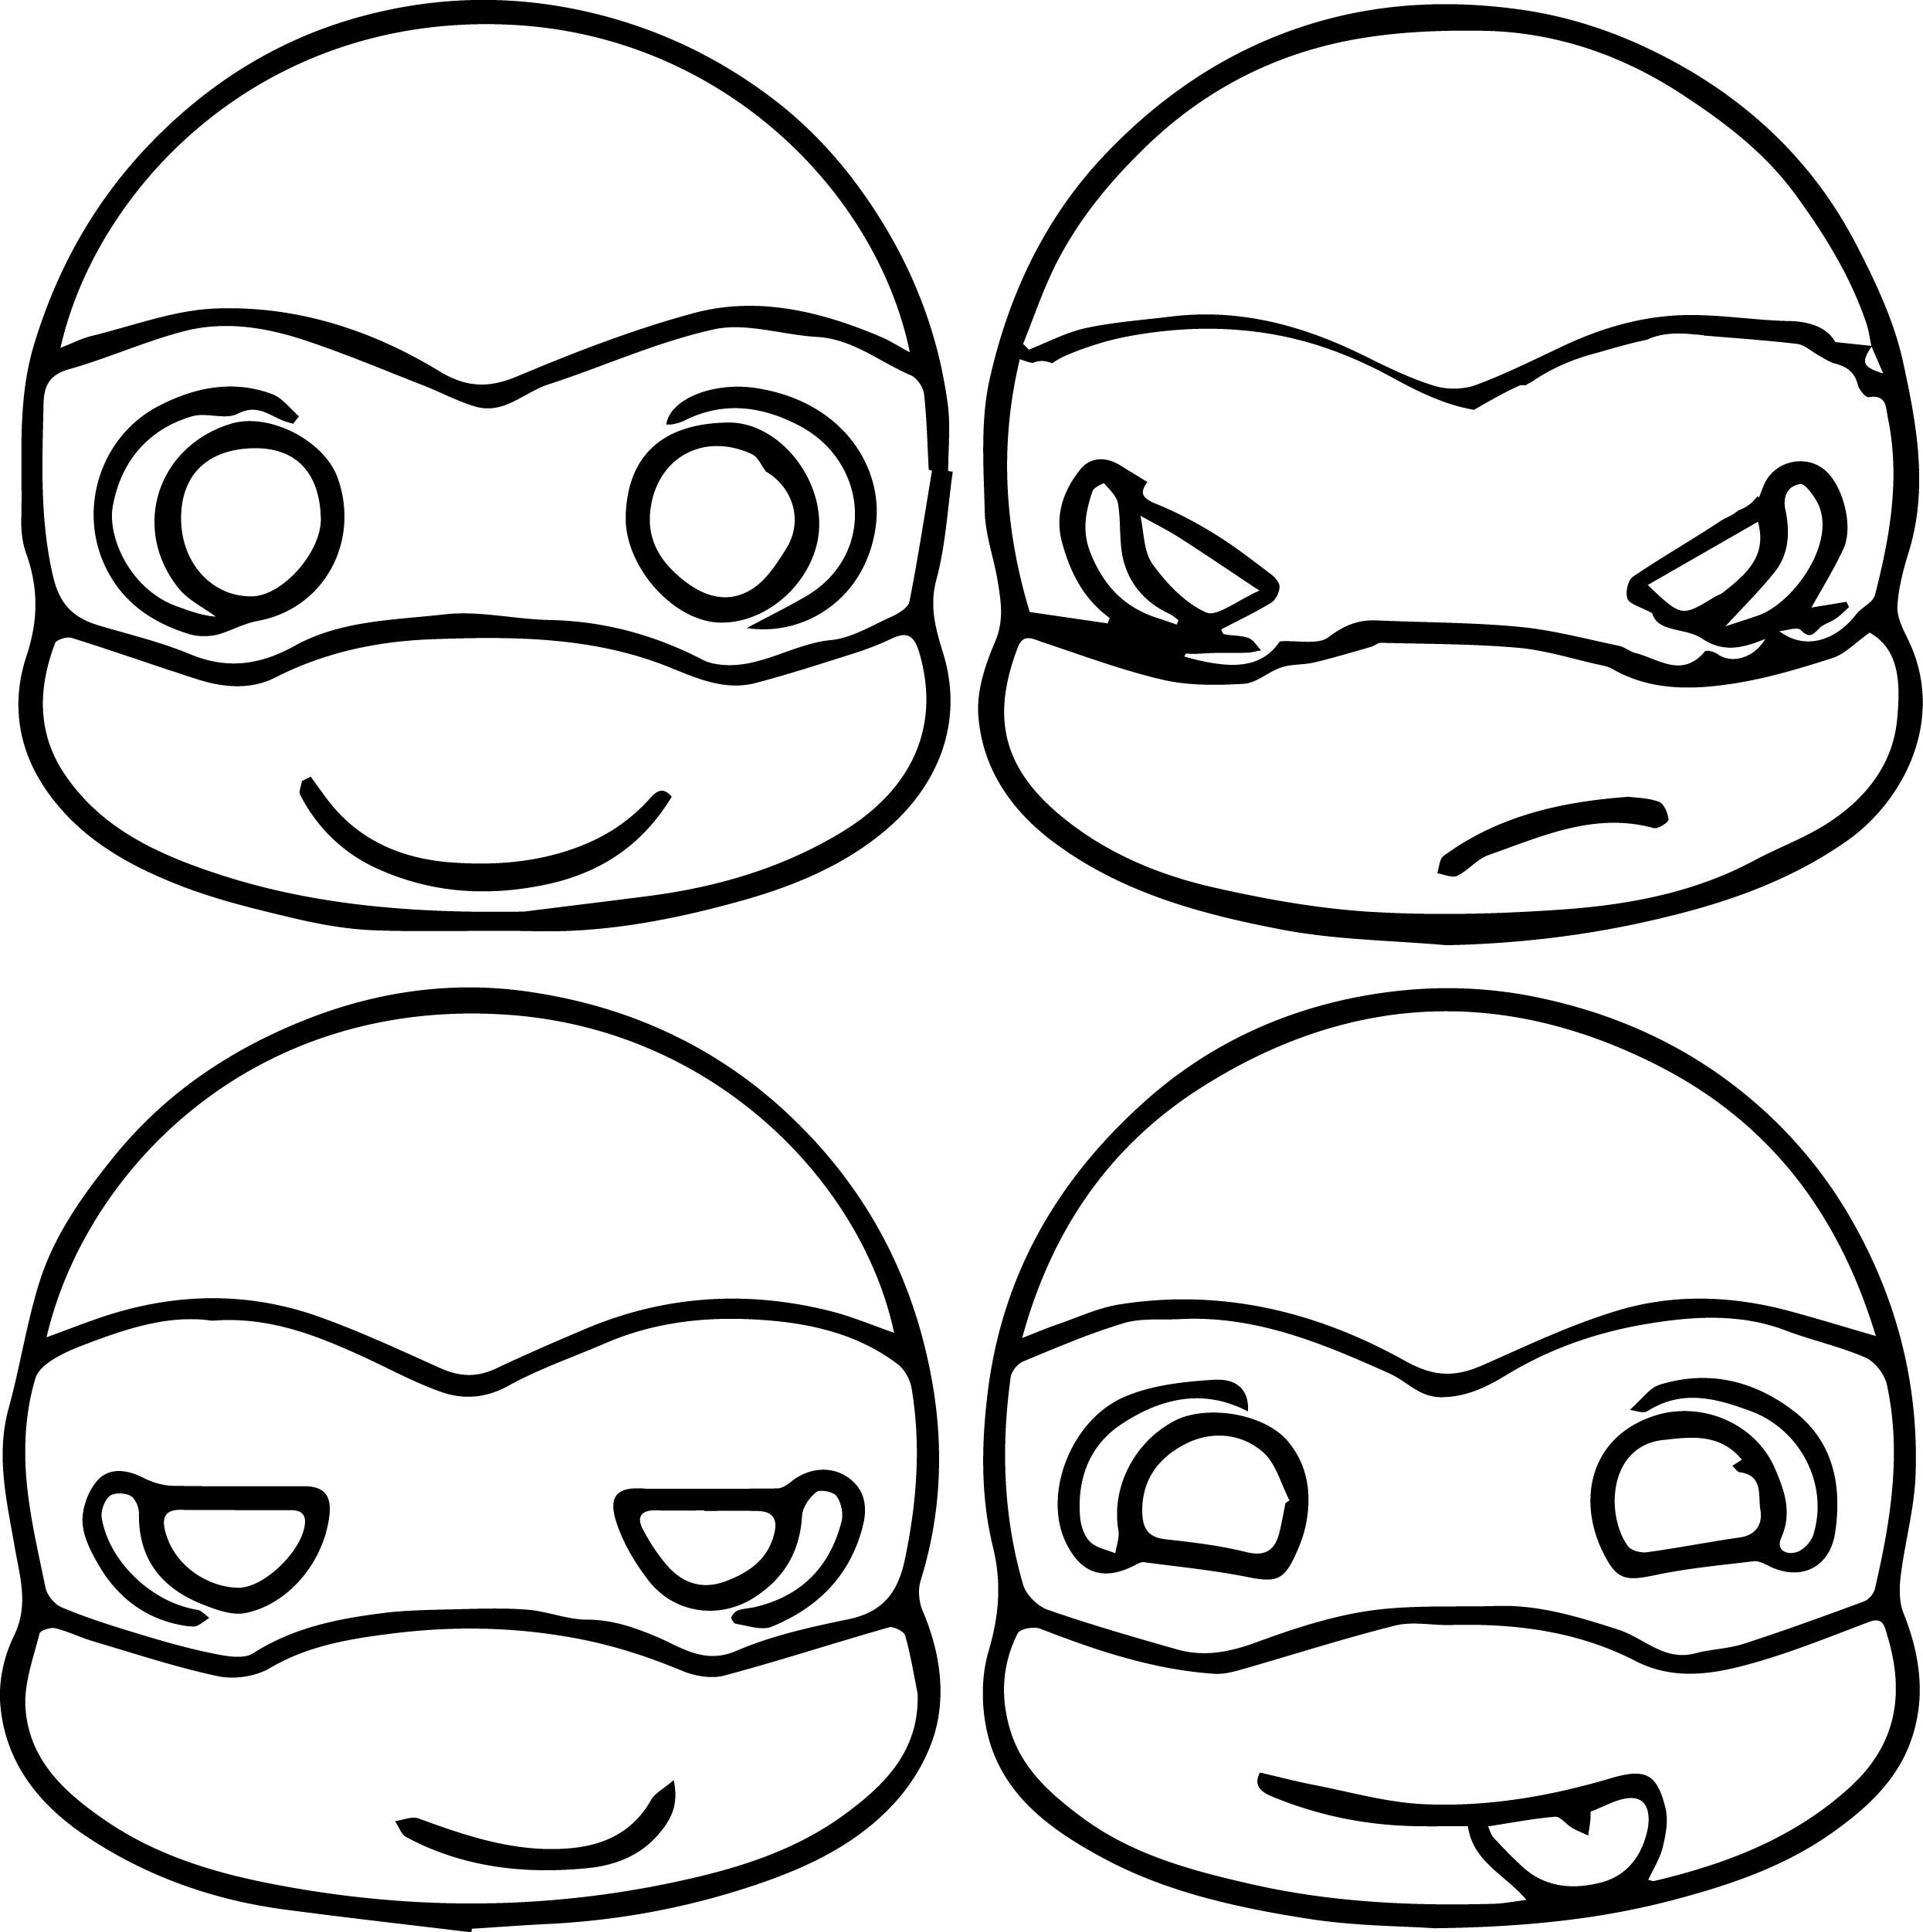 Ninja Turtle Cartoon Coloring Pages Turtle Coloring Pages Ninja